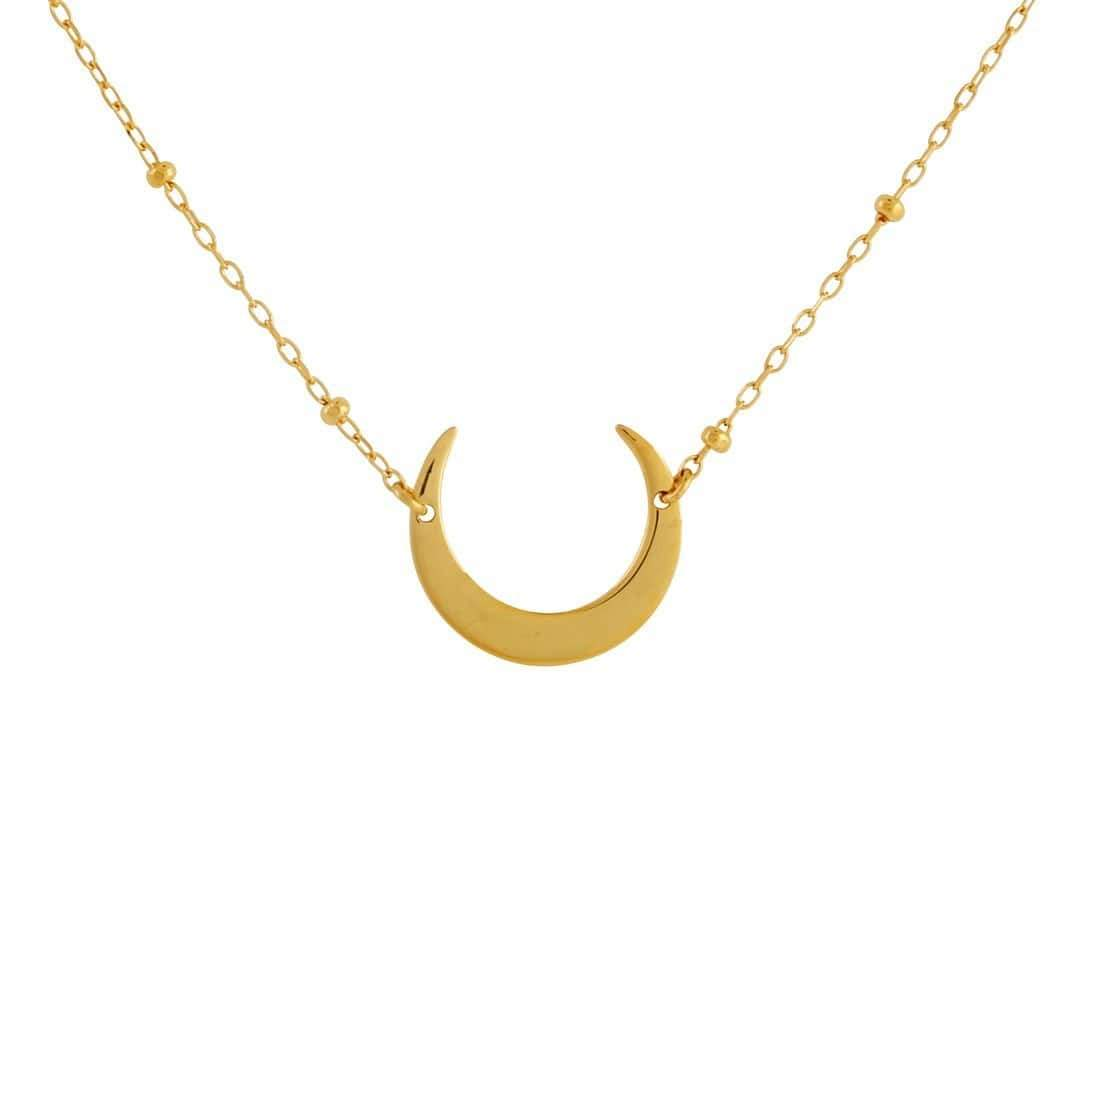 Midsummer Star Necklaces Gold Moon Eclipse Necklet